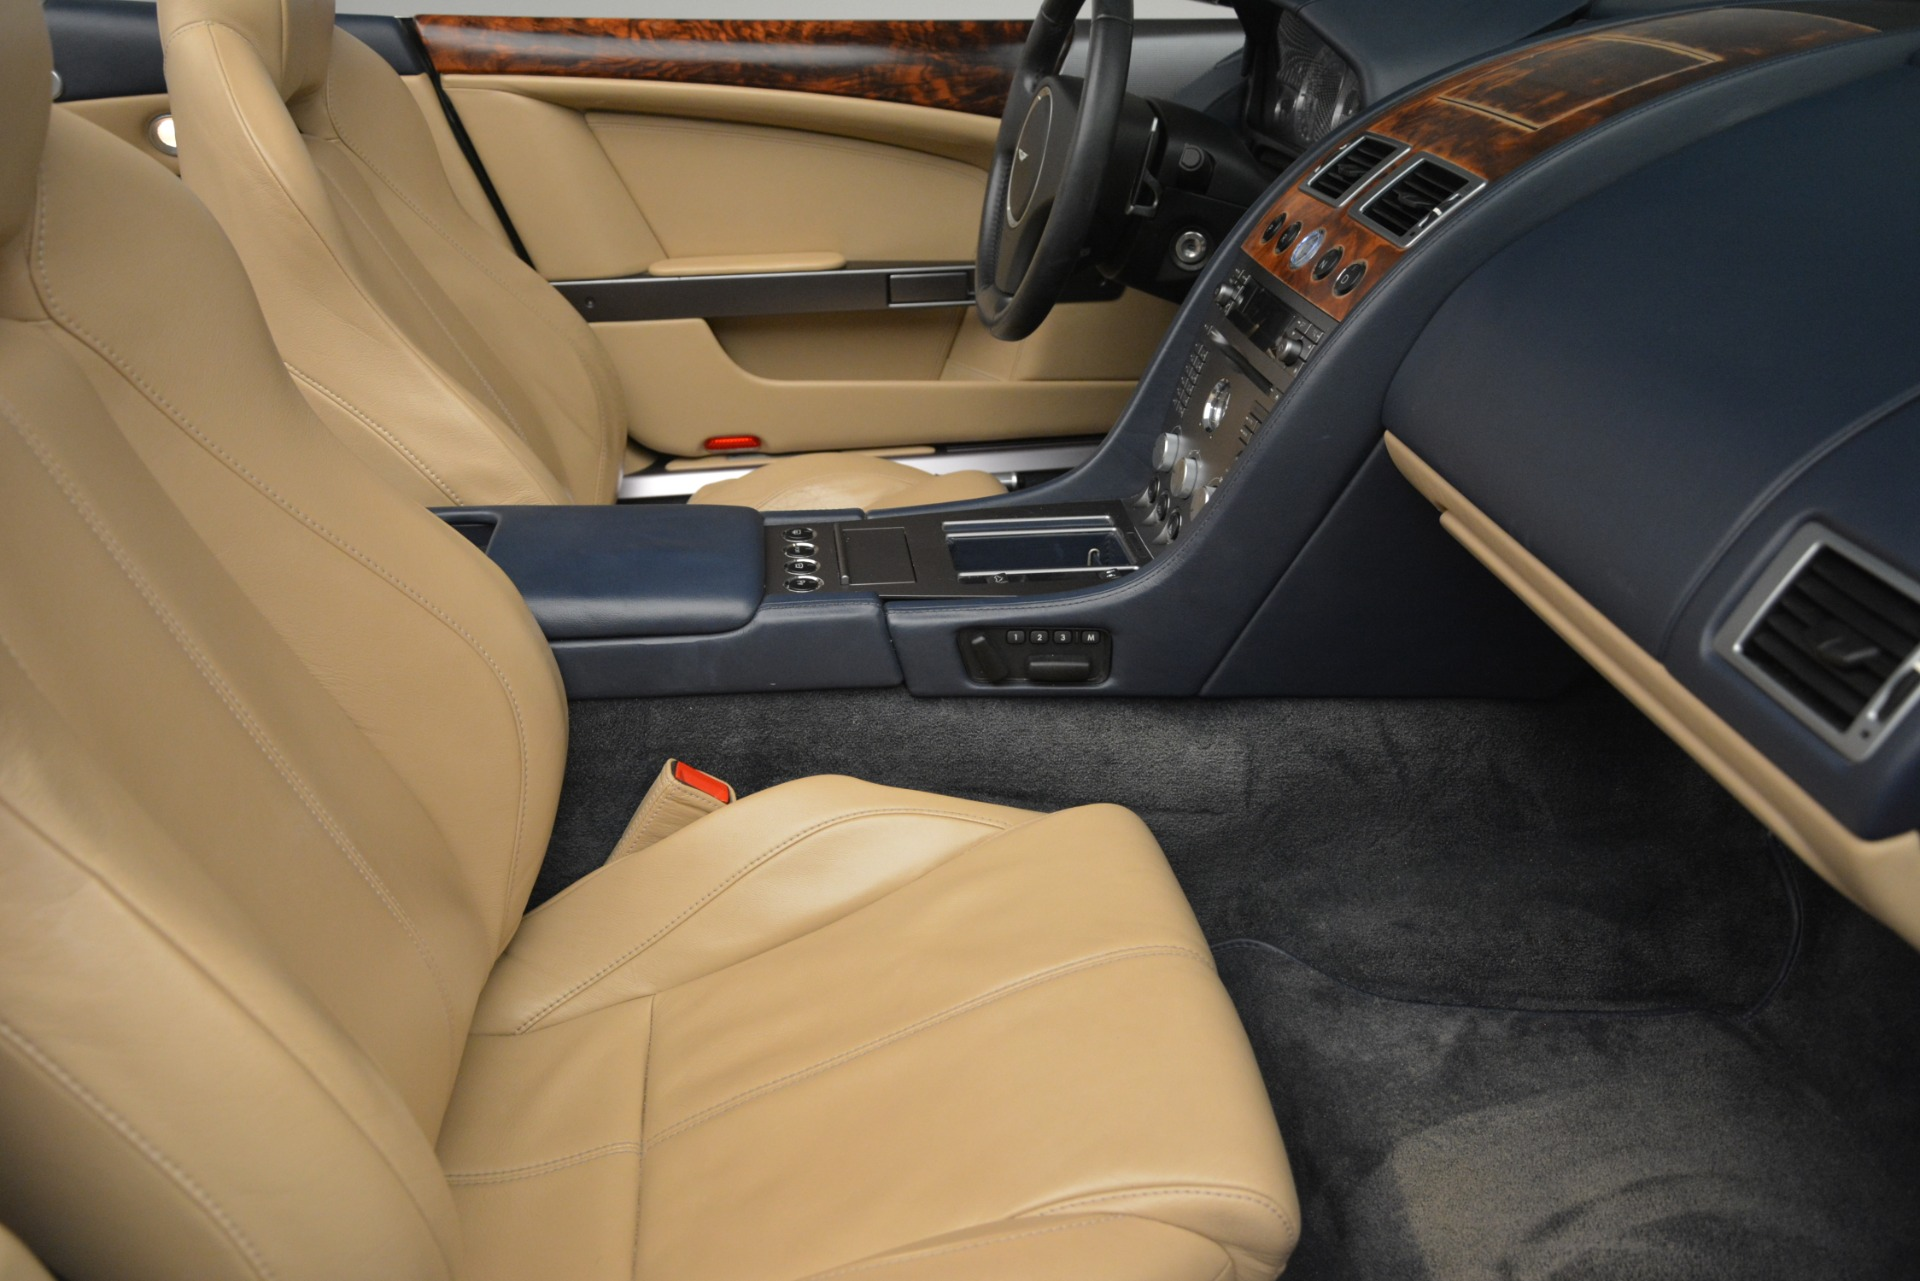 Used 2007 Aston Martin DB9 Convertible For Sale In Westport, CT 3291_p20